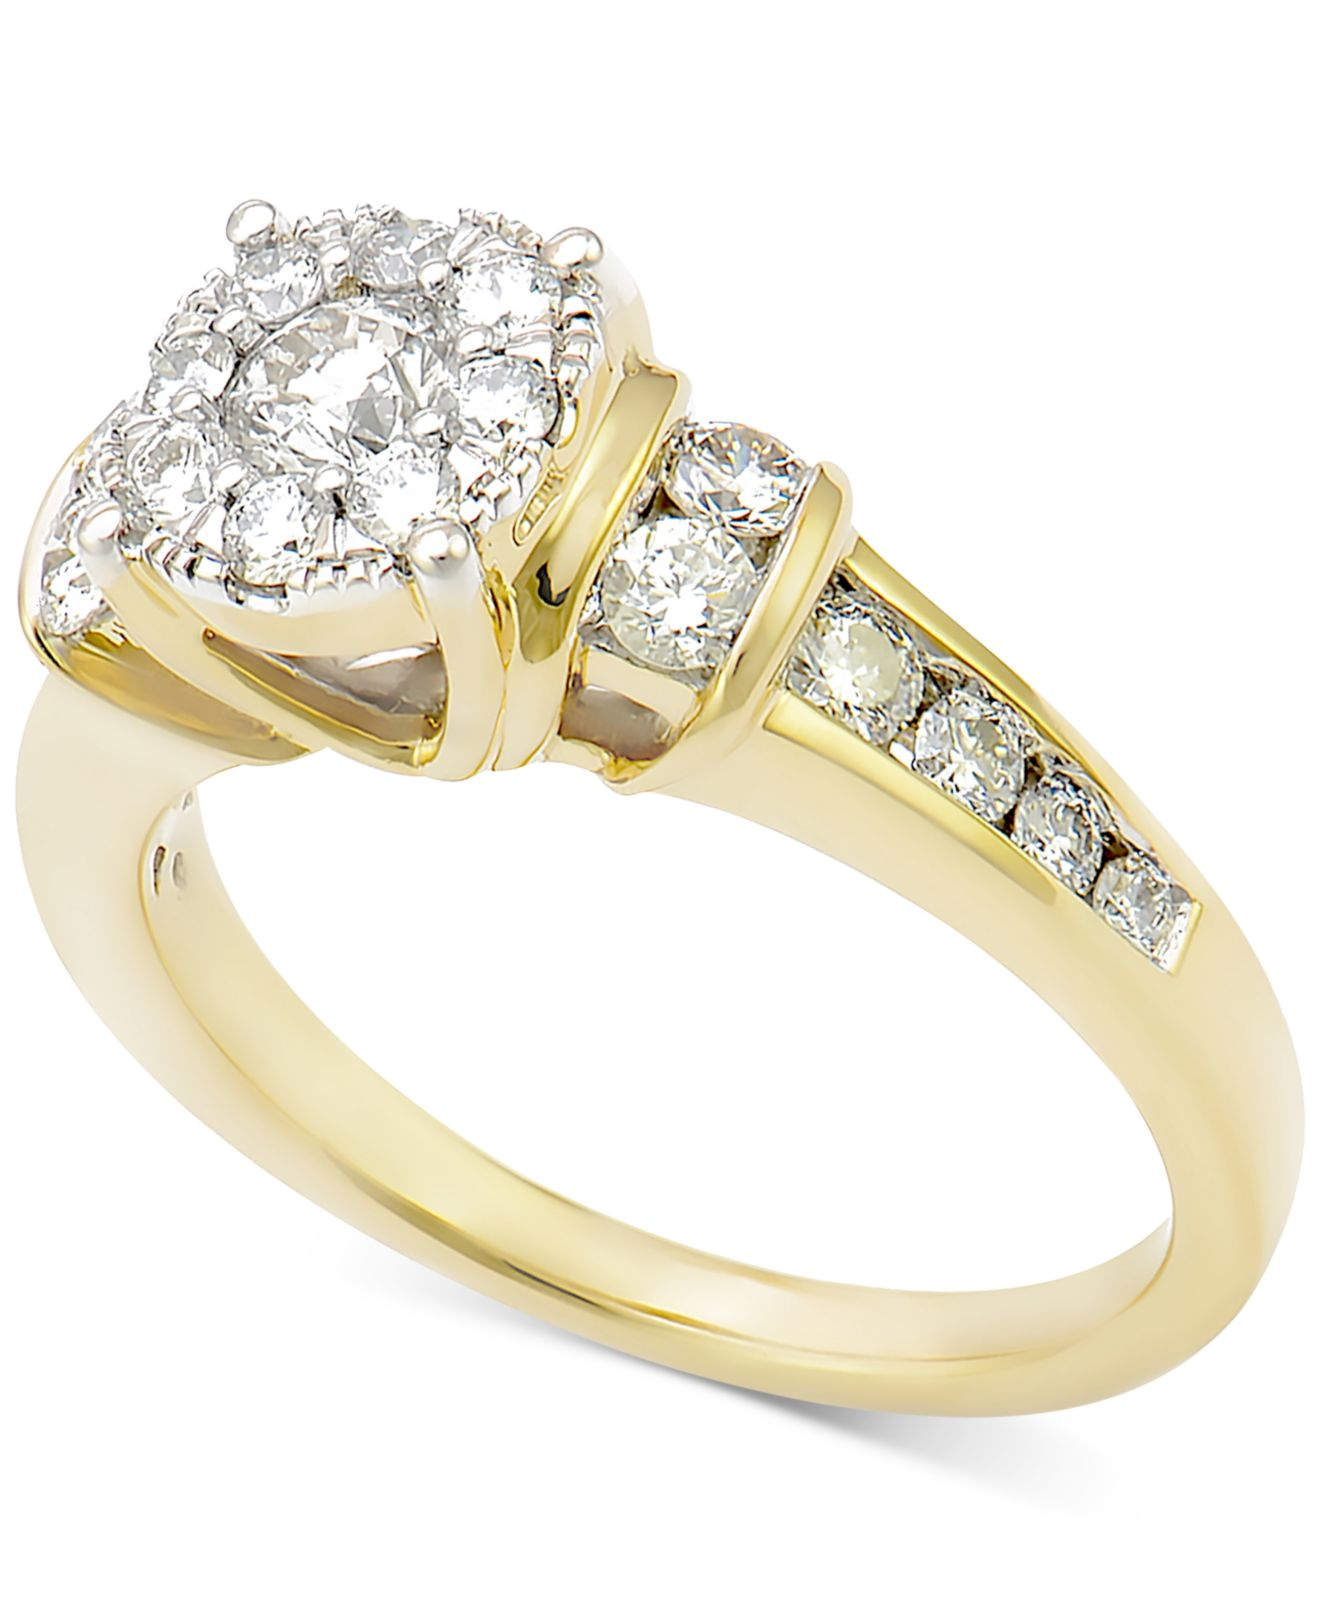 Macy s Diamond Cluster Engagement Ring 1 Ct T w In 14k Gold in Metall